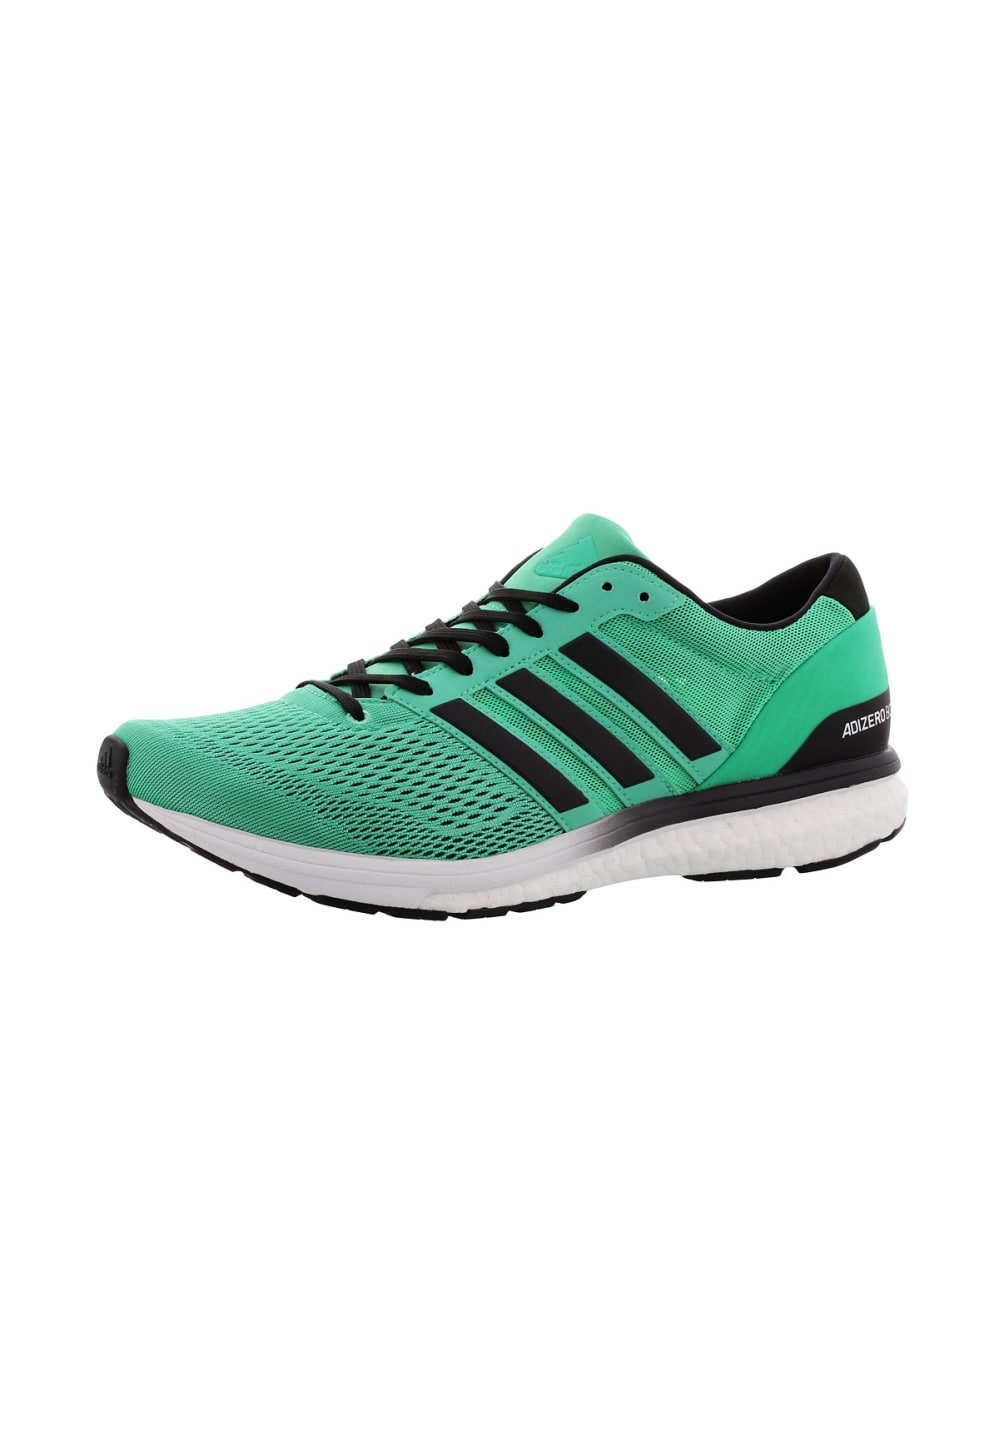 Adidas Running Chaussures Homme Vert Adizero 6 Pour Boston byY76fg